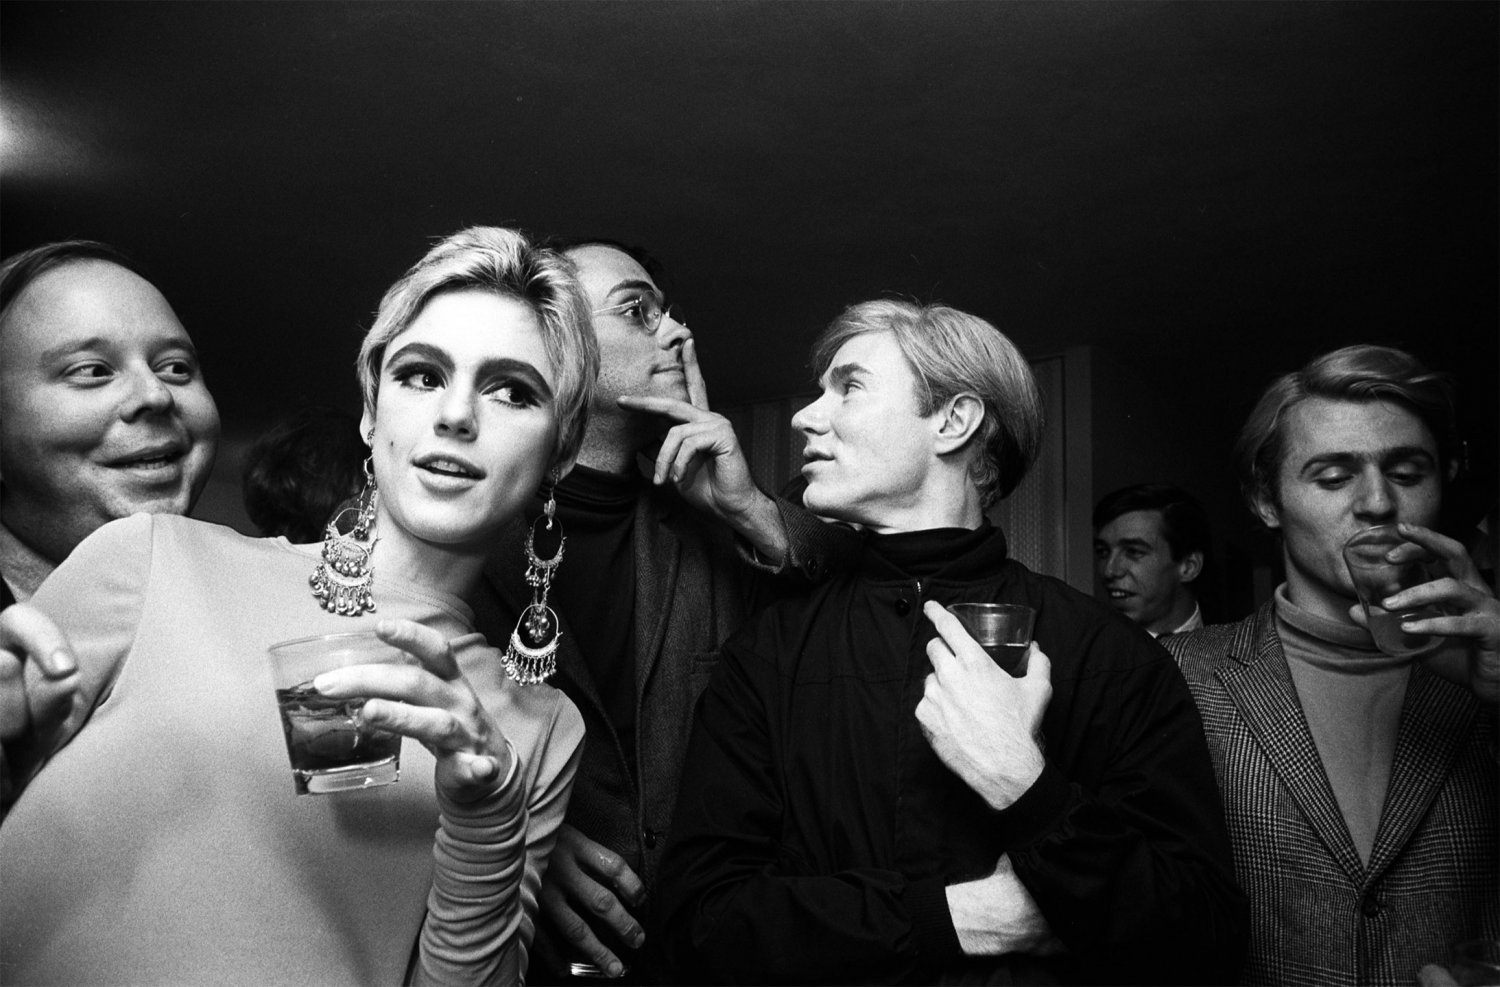 Andy Warhol  Edie Sedgwick  13x19 inches Poster Print